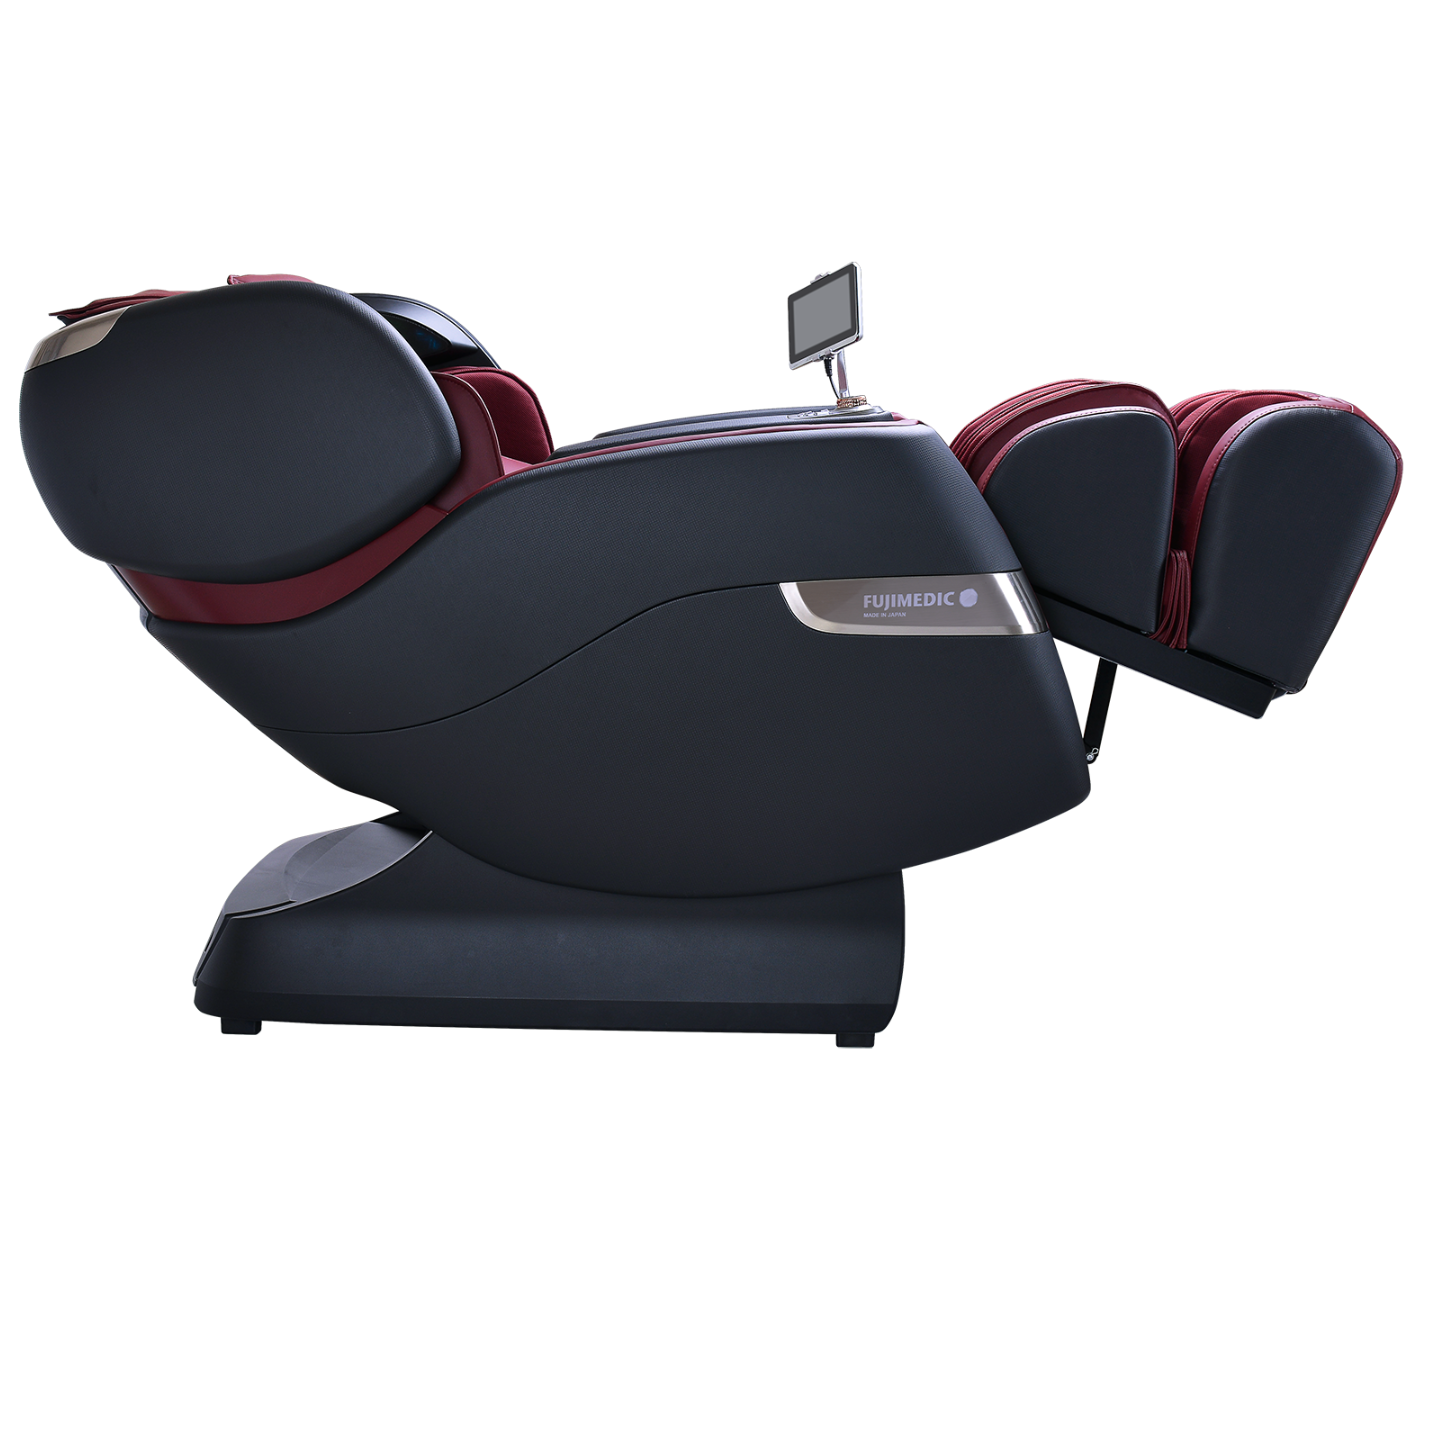 Fujimedic Kumo Massage Chair